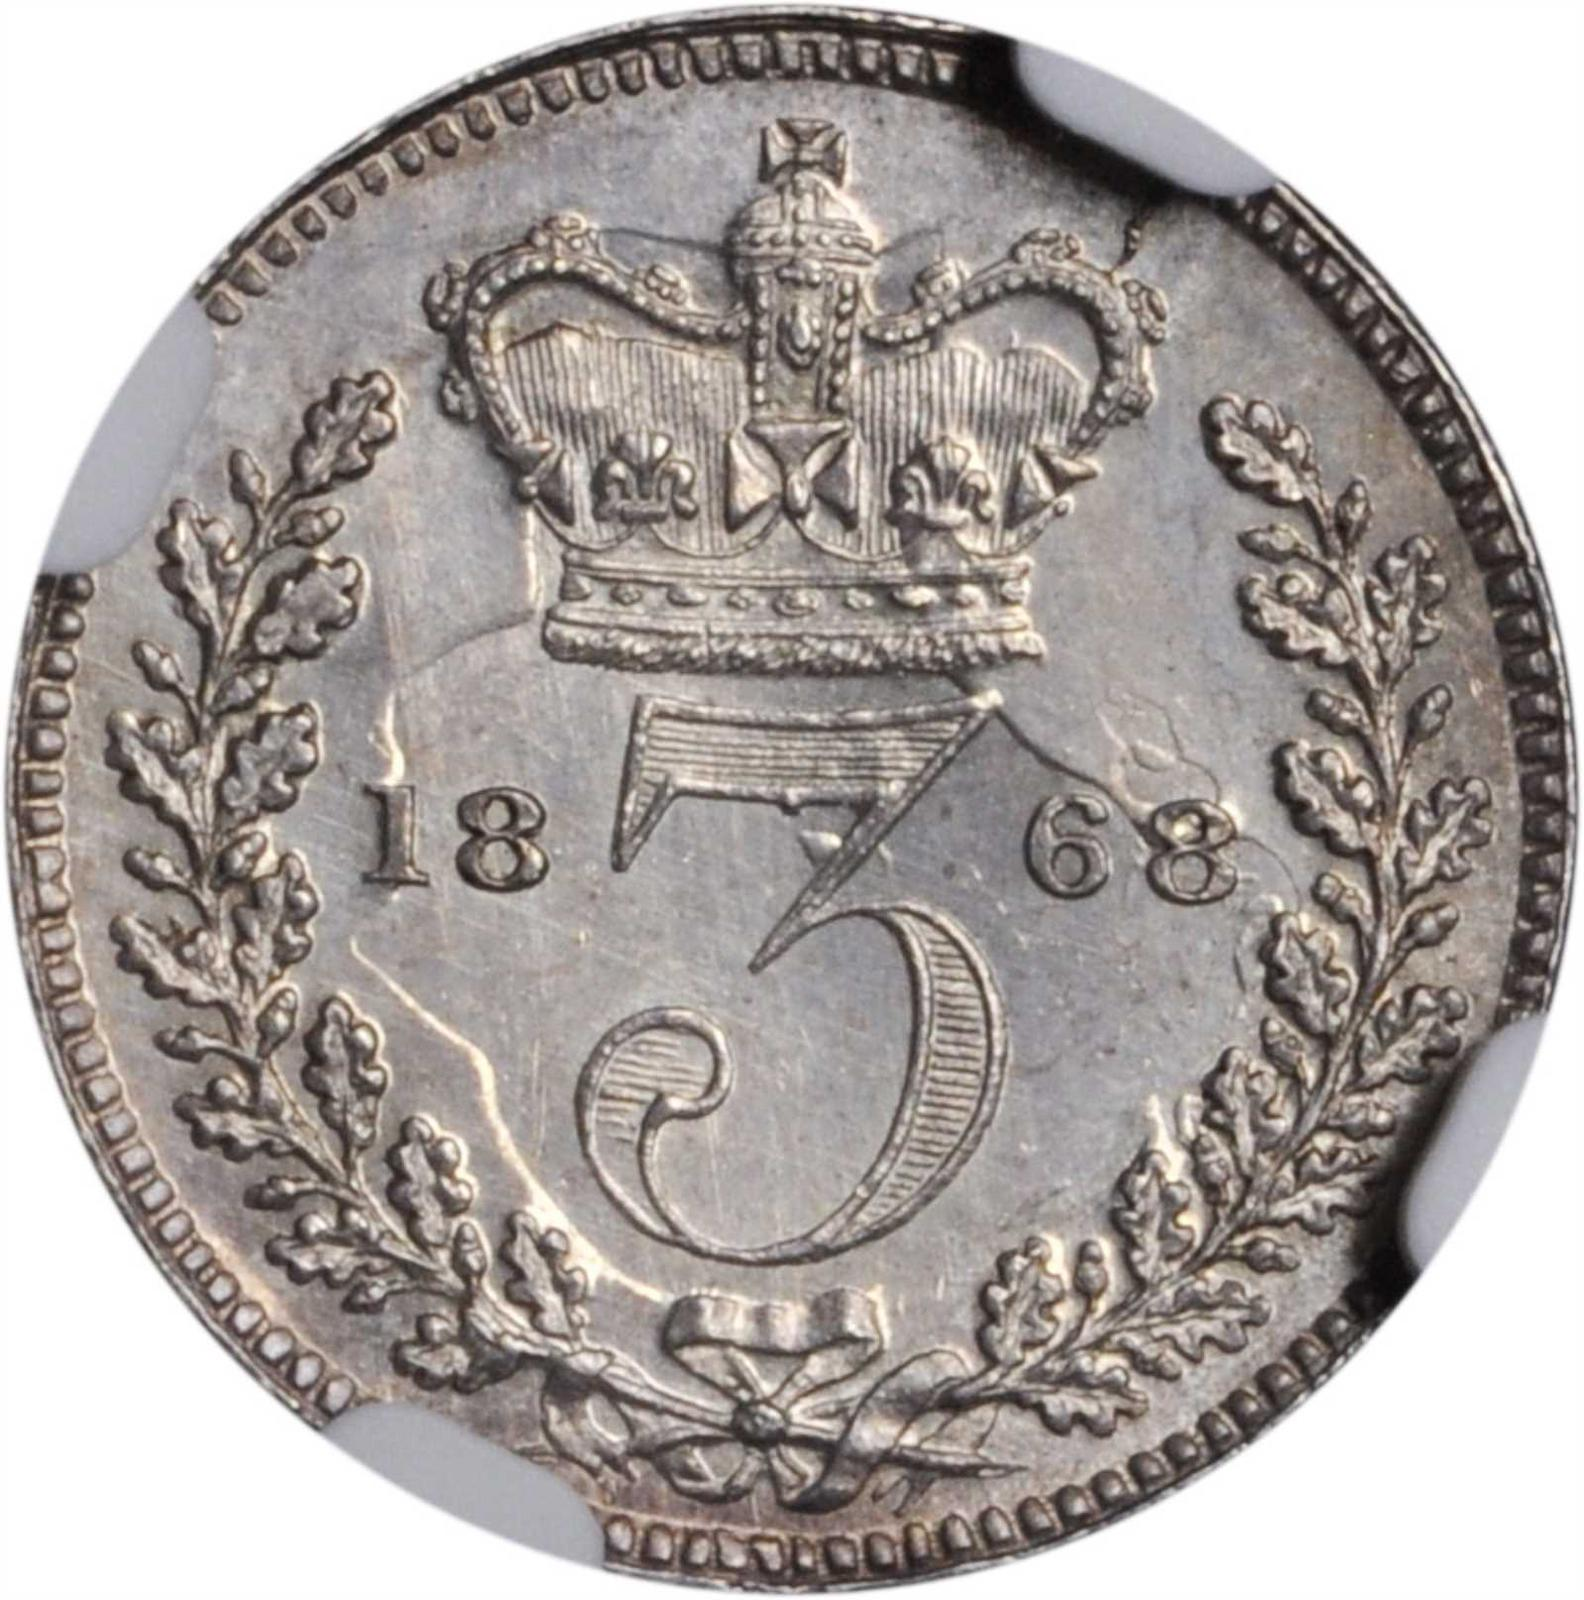 Threepence 1868 (Maundy): Photo Great Britain 1868 3 pence